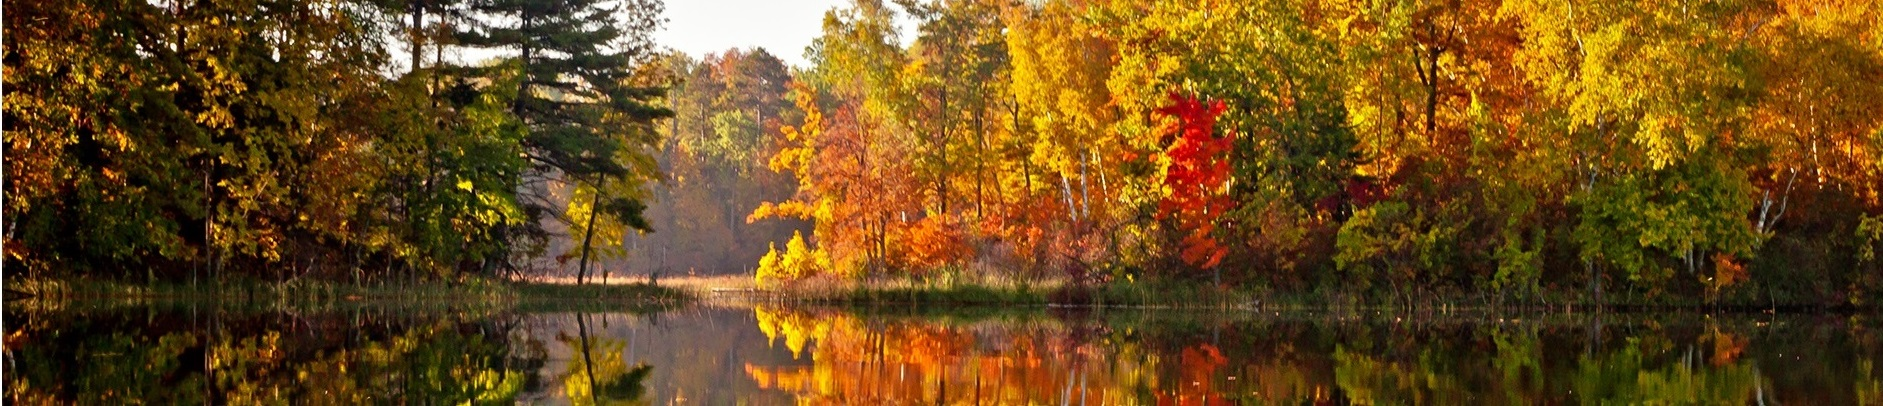 autum reflection on lake